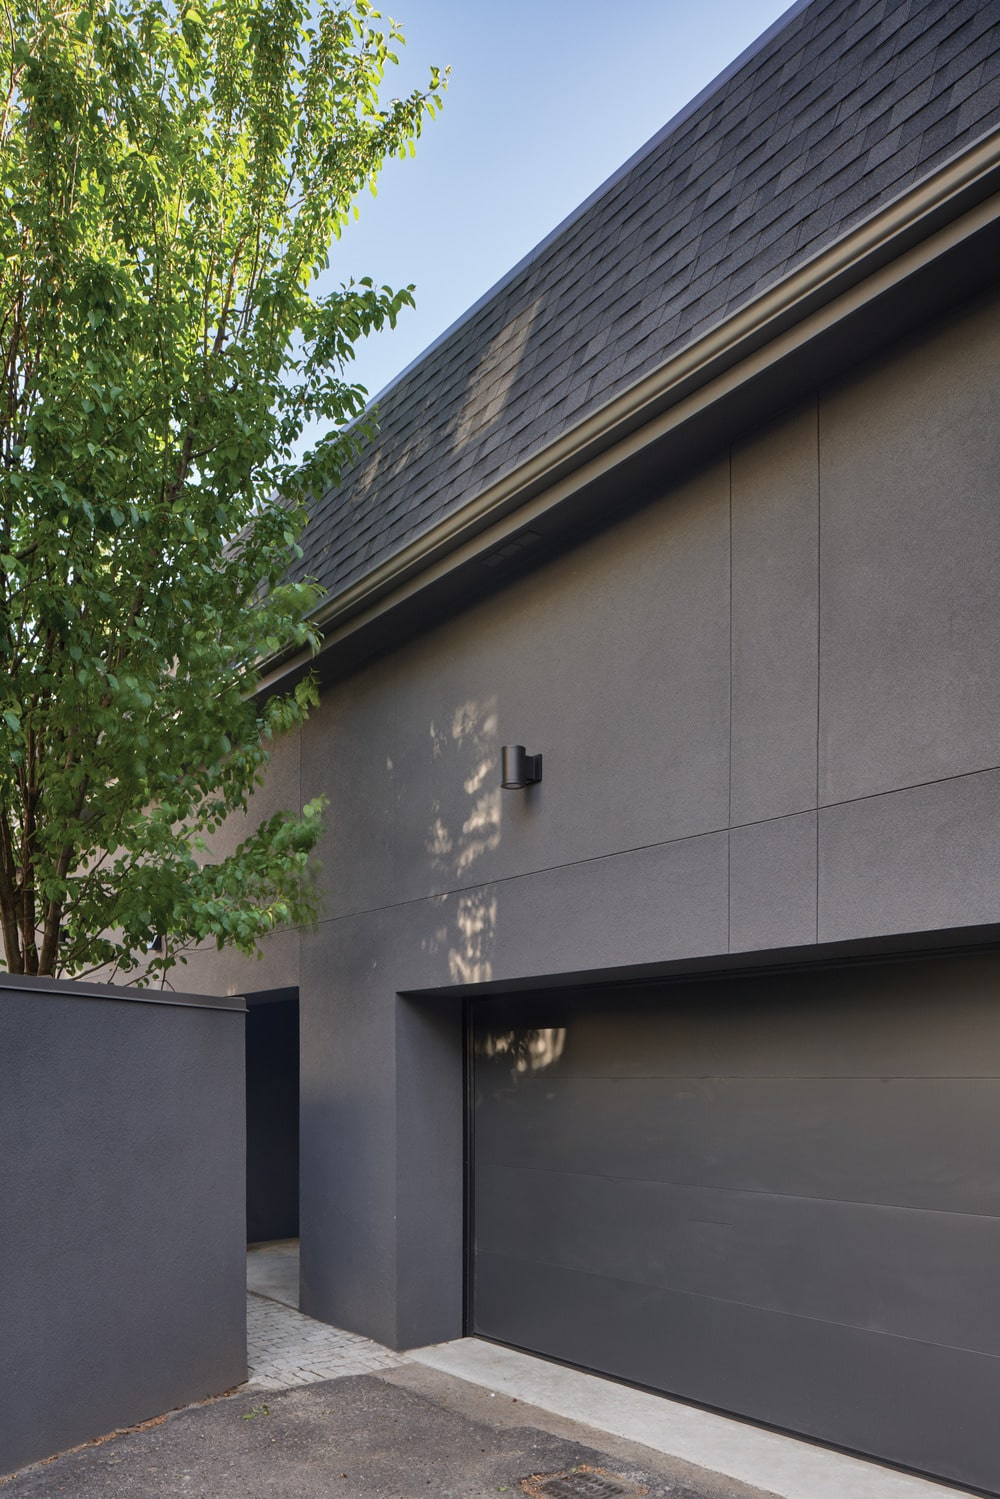 This is a closer look at the garage with a gray tone to match the exteriors.